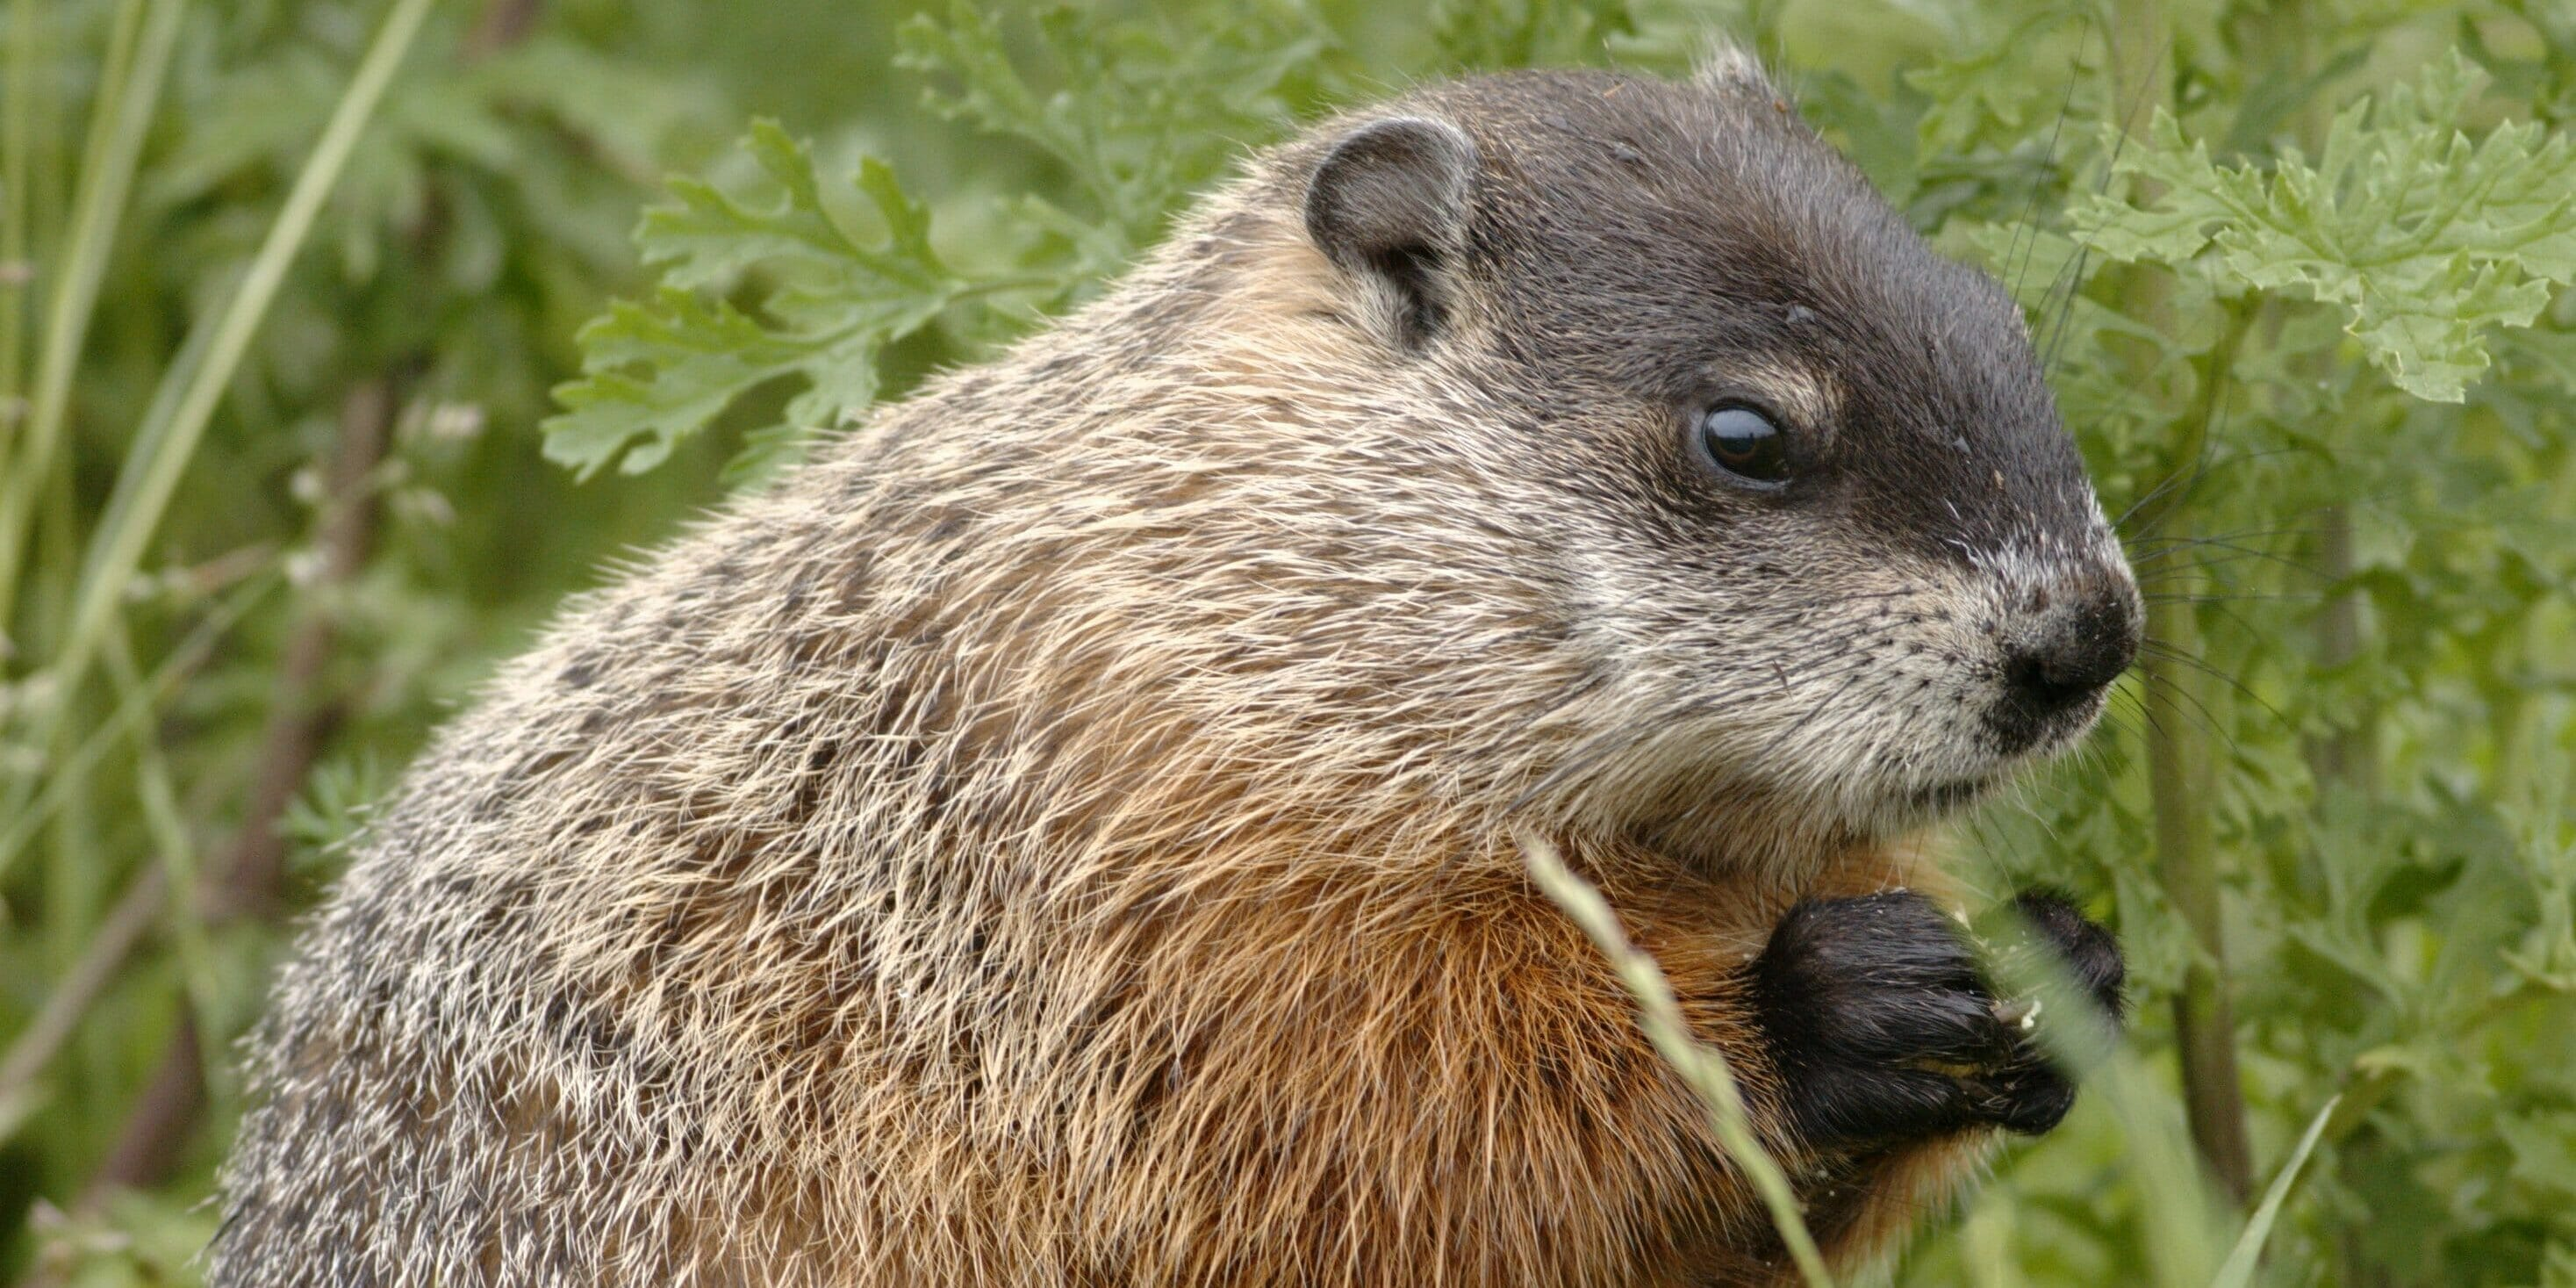 everyone on twitter is upset about this cop who shot a groundhog